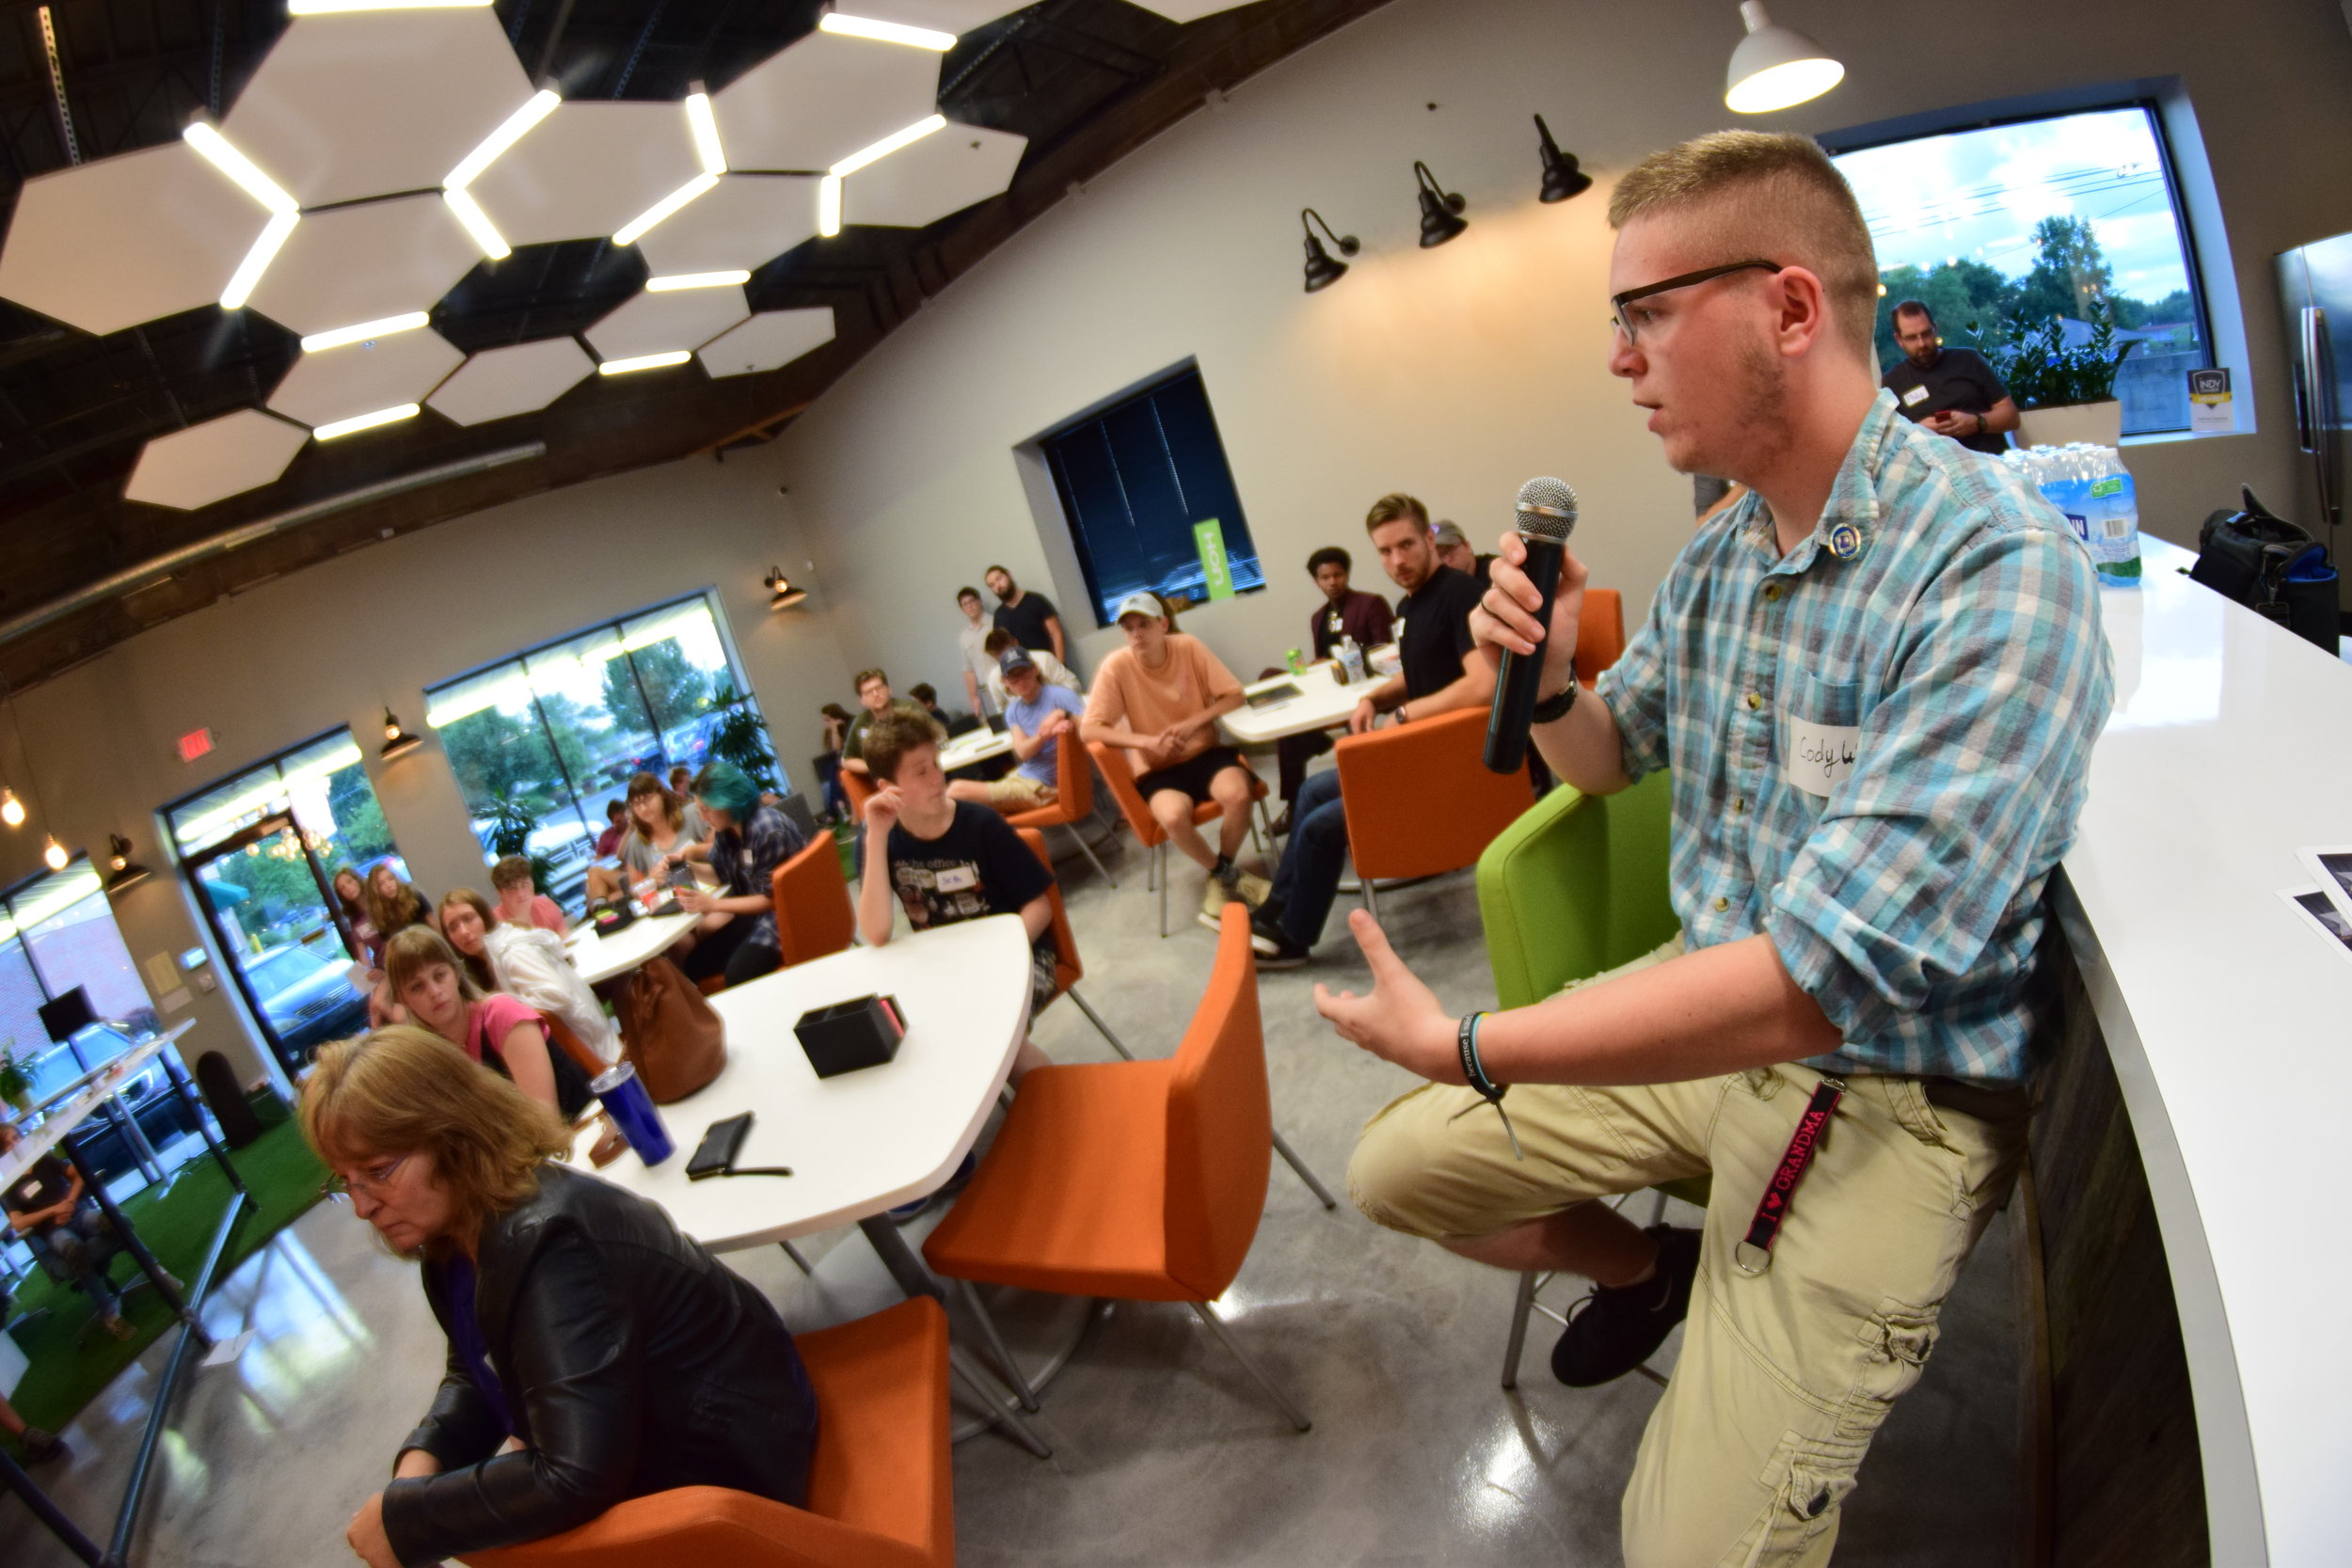 Cody Wysong with the microphone at a Student Innovation Night at Outhouse Coworking